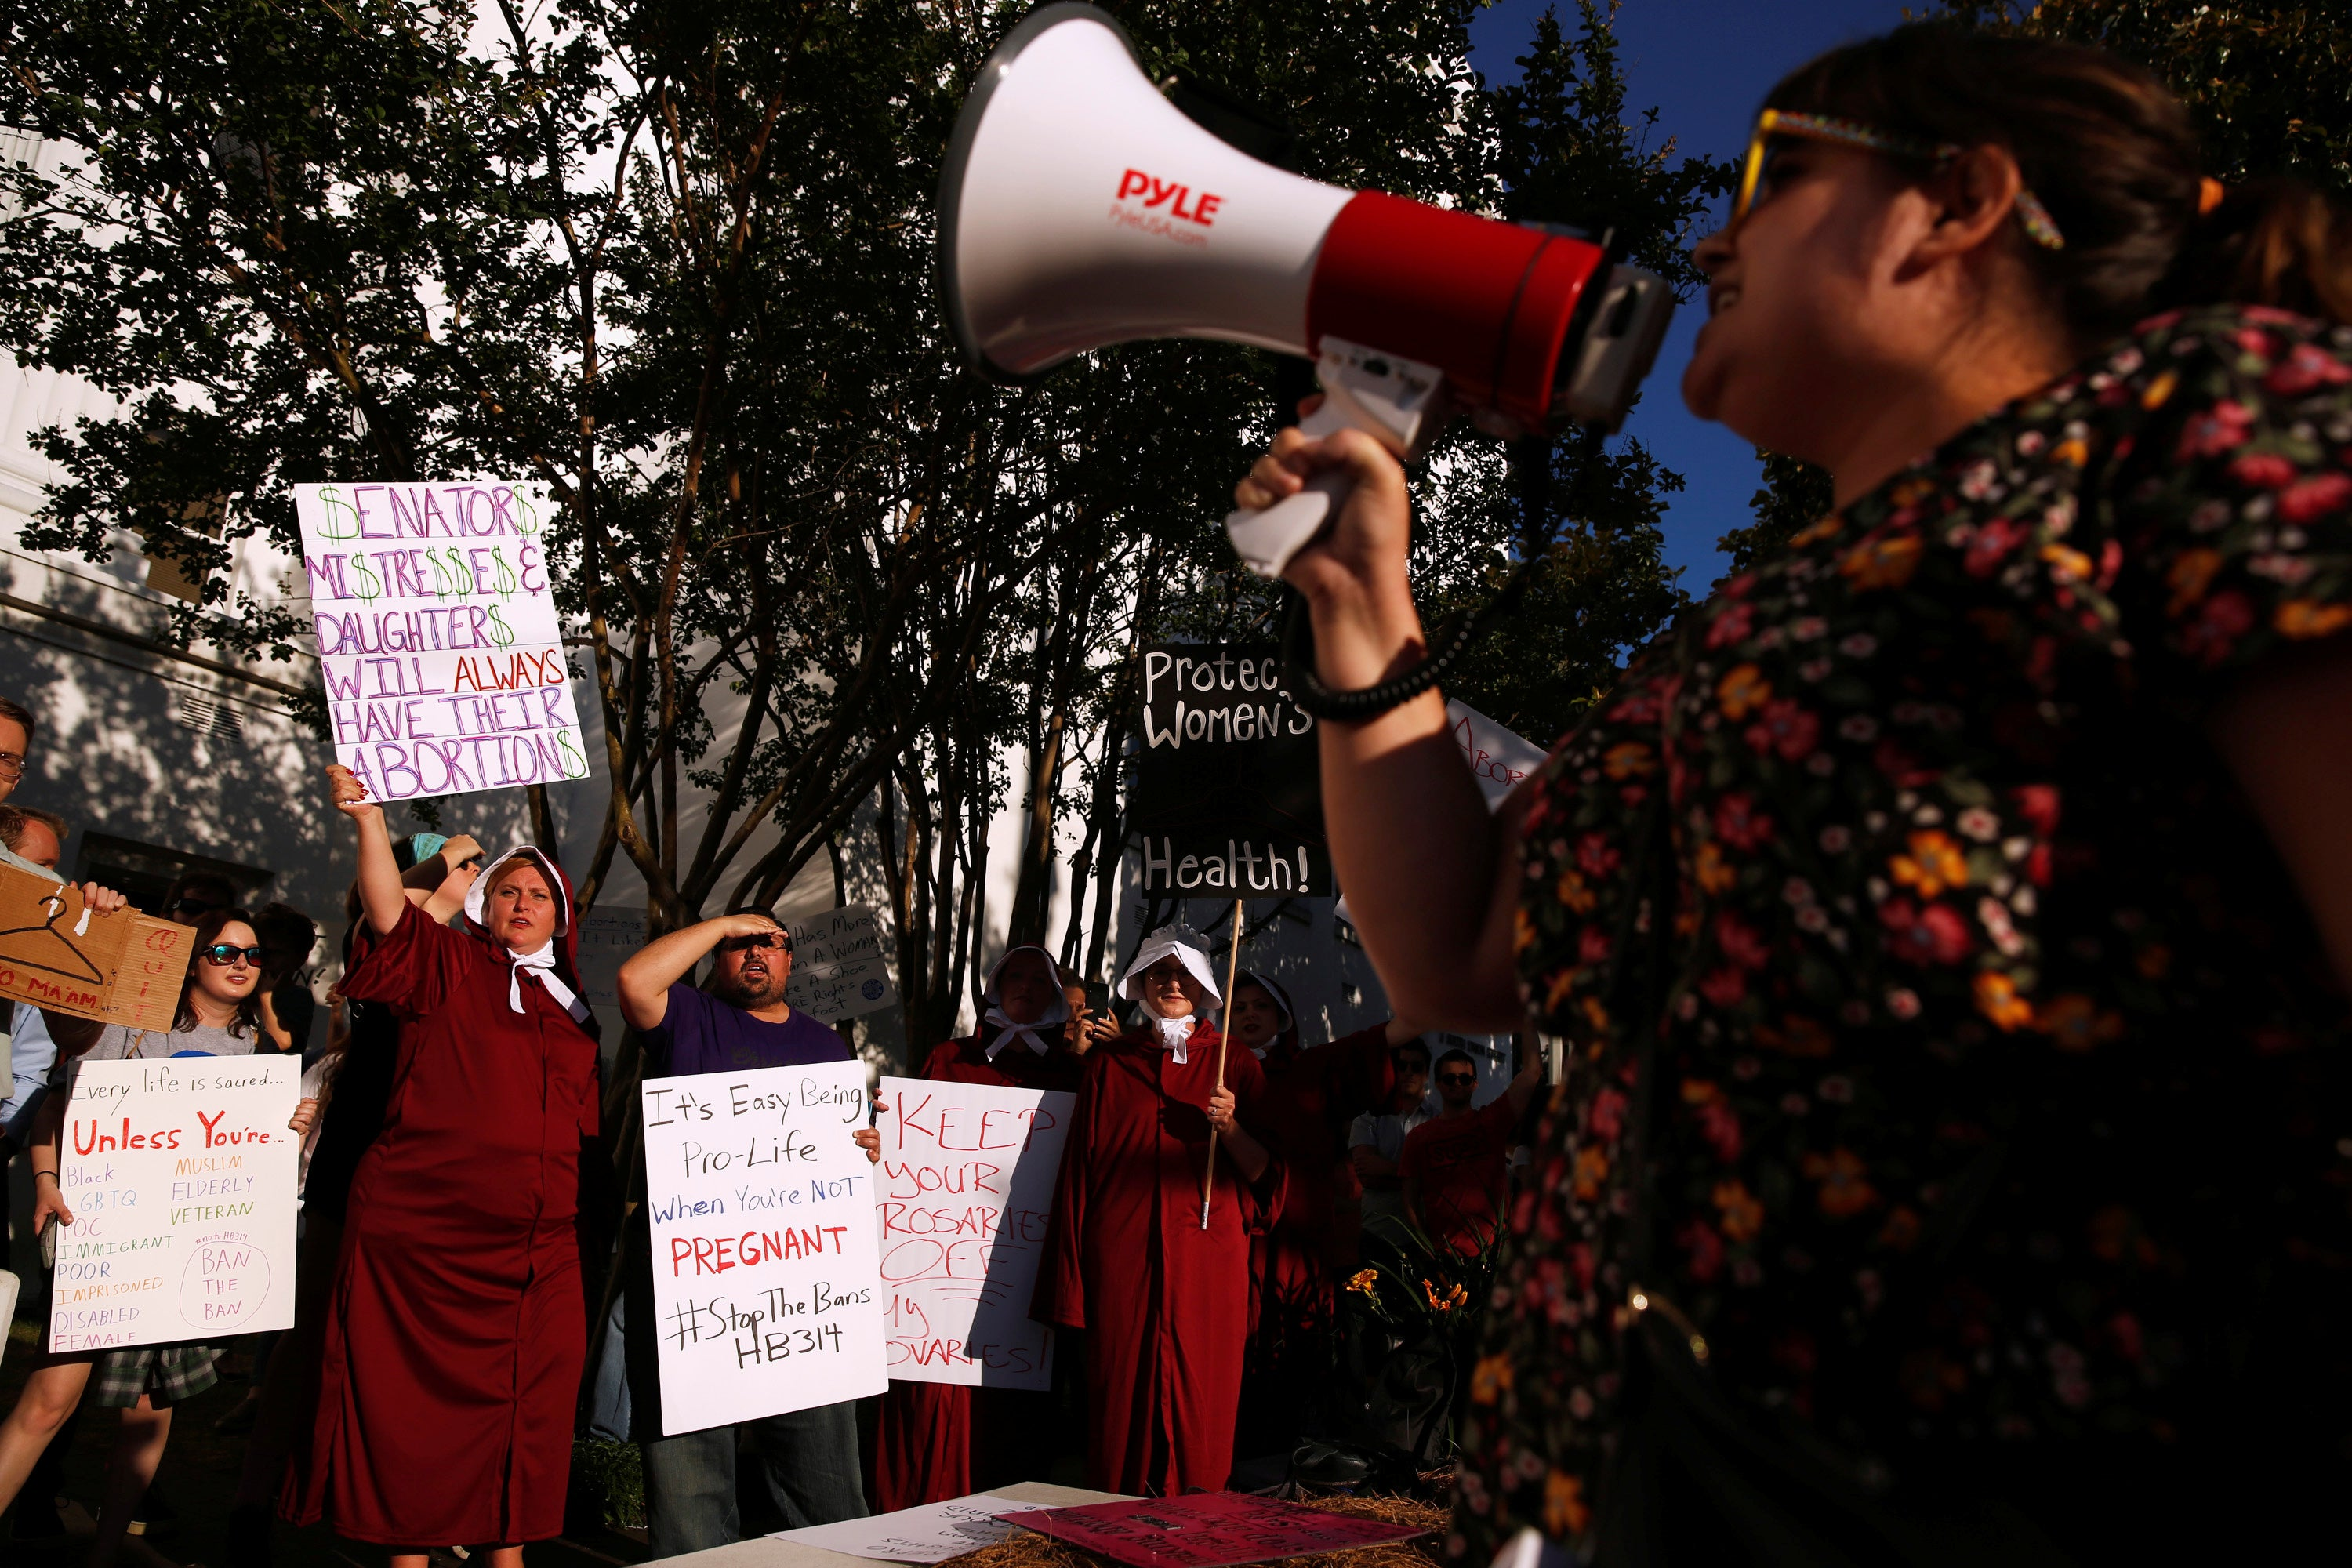 Protesters carry pro-choice signs; some are wearing red Handmaid's Tale dresses. In the foreground, a protester shouts into a megaphone.